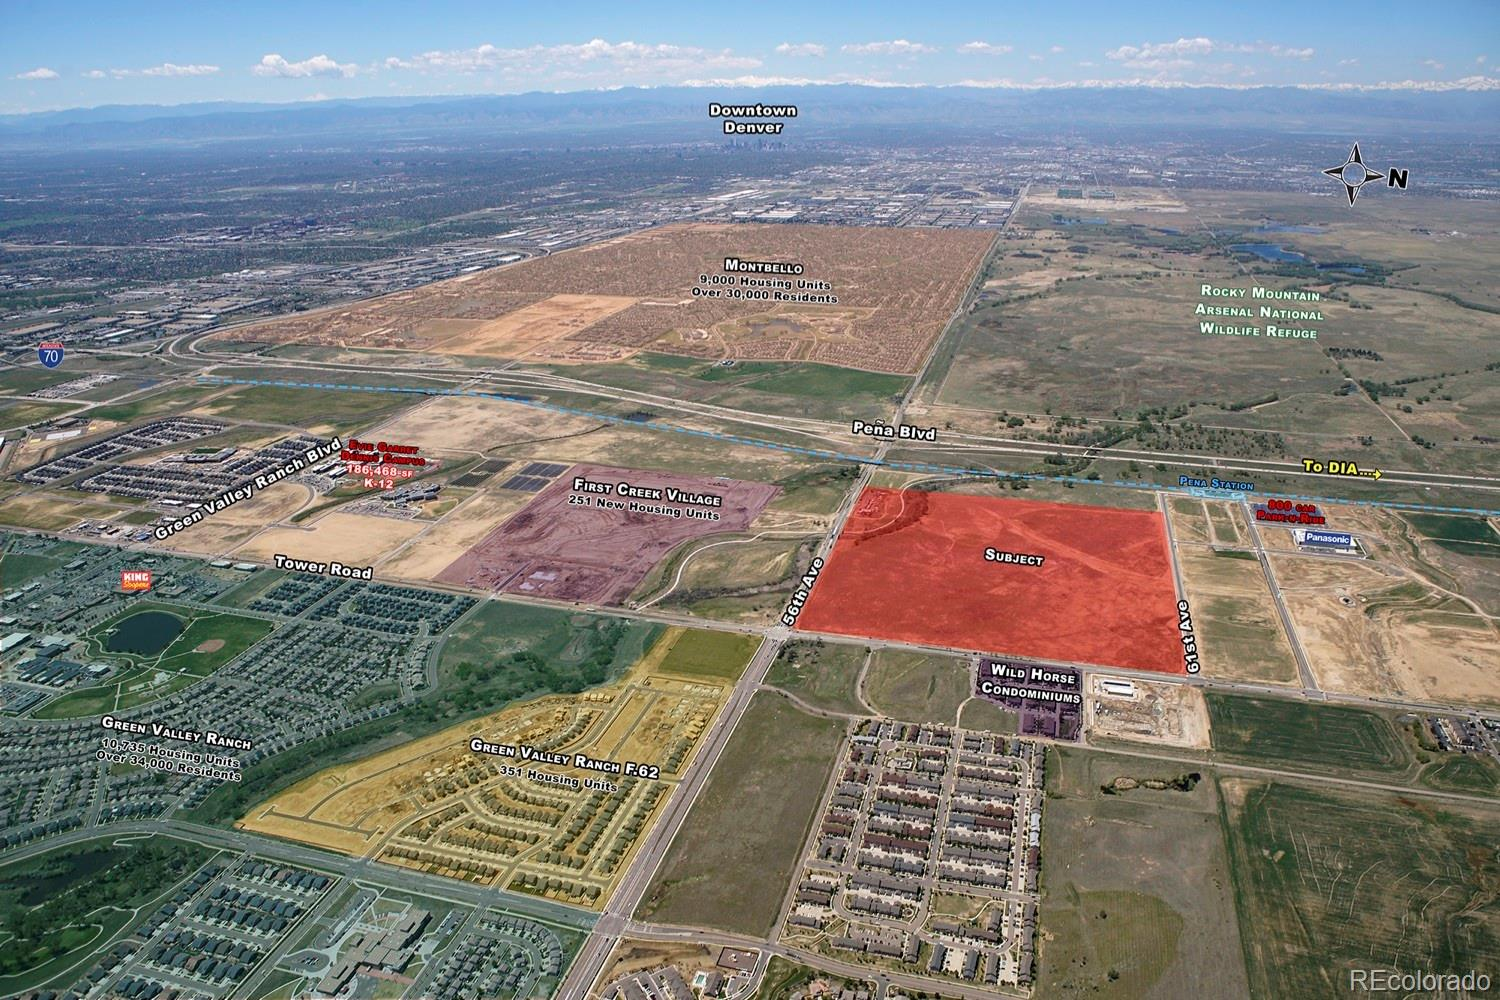 Rare opportunity to purchase one of the most unique and prime greenfield development sites in the City of Denver. This transit oriented development is located in the heart of Denver's rapidly expanding eastern edge with direct access to the newly constructed Pena Station. In total, the site is approximately 147 acres bounded by Tower road on the east, E 56th Ave. on the south, and E 61st Ave on the north.   Subject property is a part of 4 separate Metro Districts which have already been created potentially saving the new owners time and money.